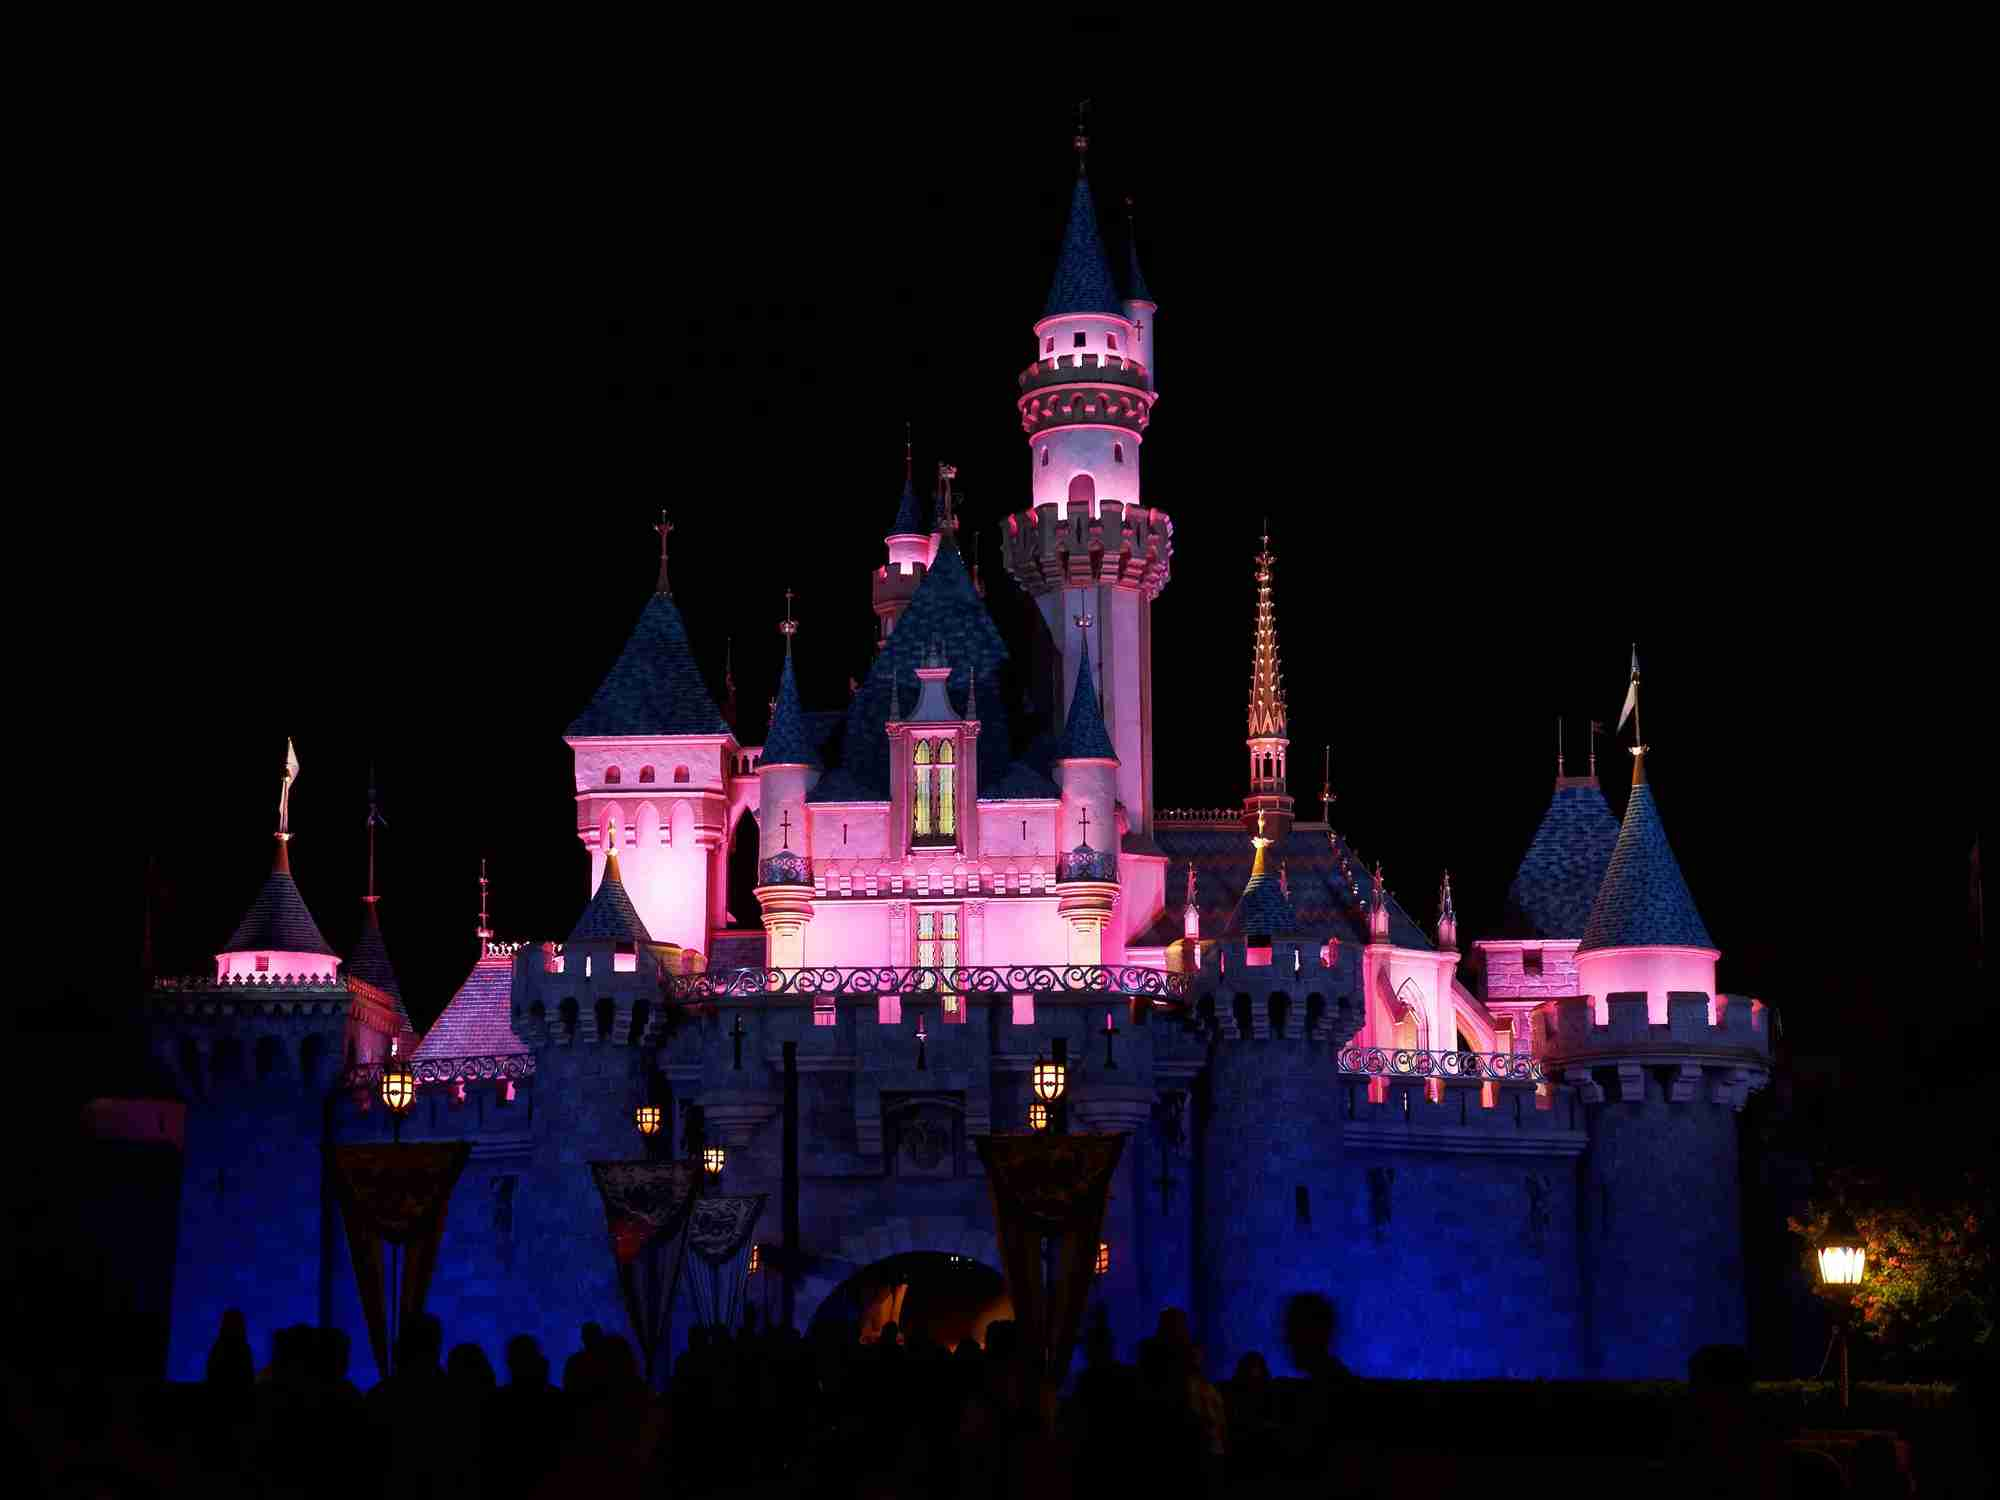 Exterior image of entrance to Sleeping Beauty Castle in Disneyland as seen at night.